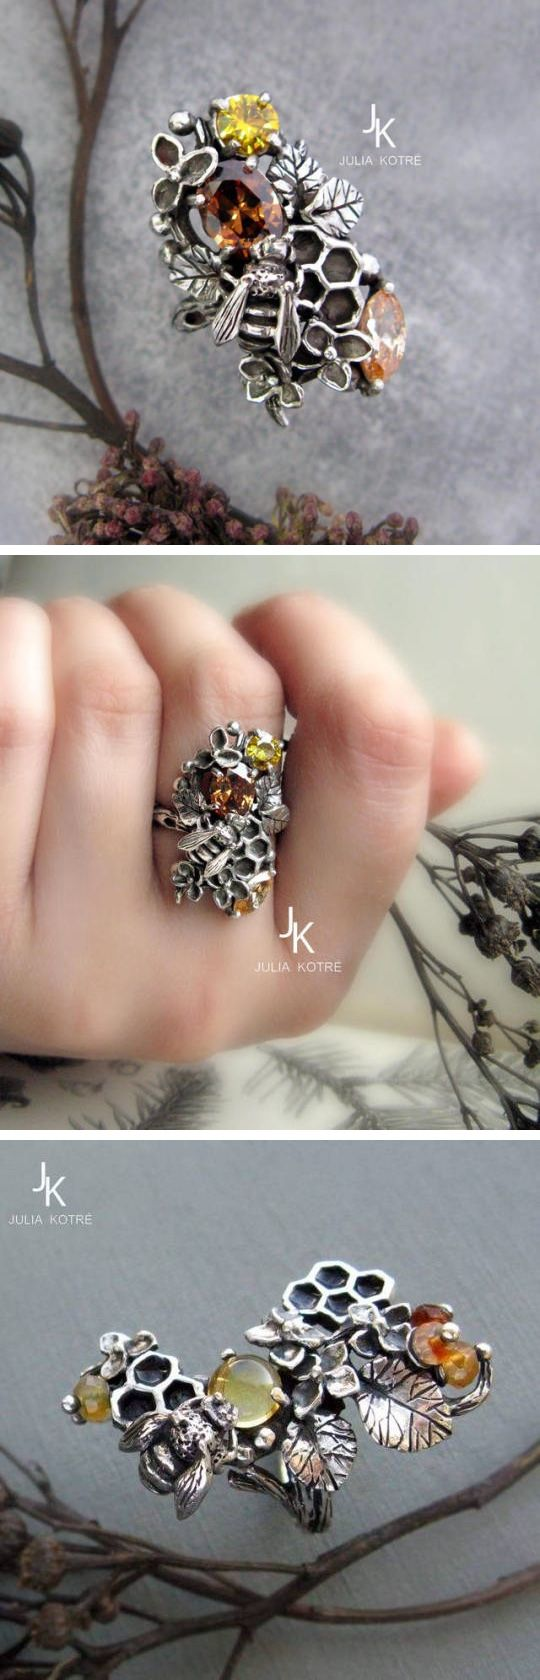 One-of-a-Kind Hand-Sculpted Honeycomb Rings byJulia Kotré